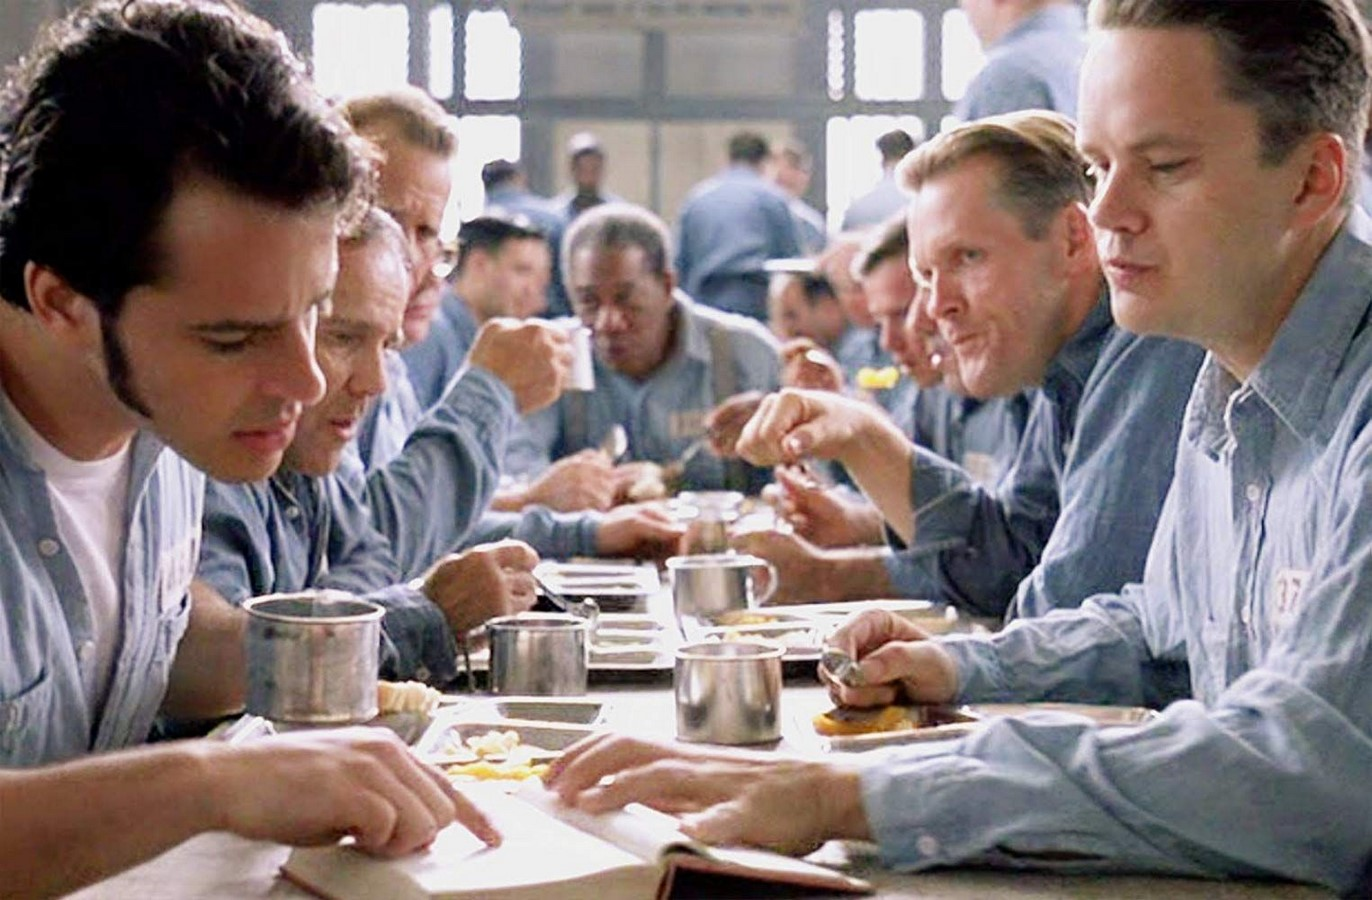 An architectural Review of The Shawshank Redemption - Sheet5